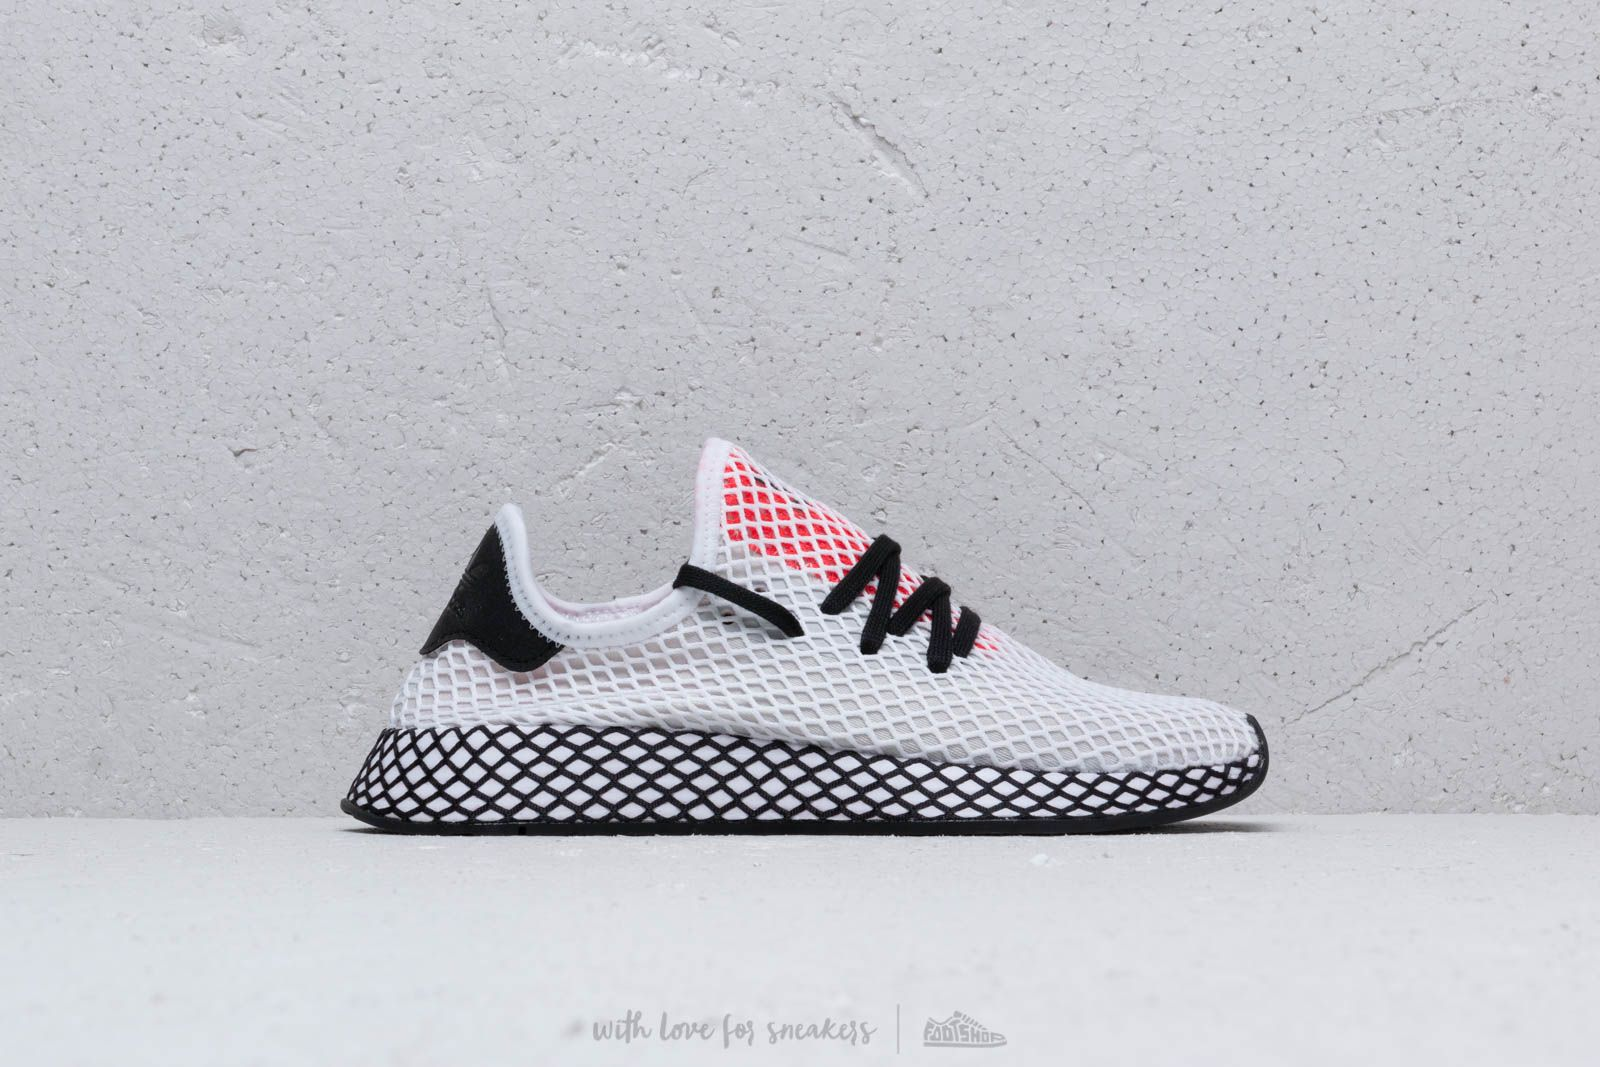 2dbe7647435b adidas Deerupt Runner Ftw White  Core Black  Shored at a great price 92 €